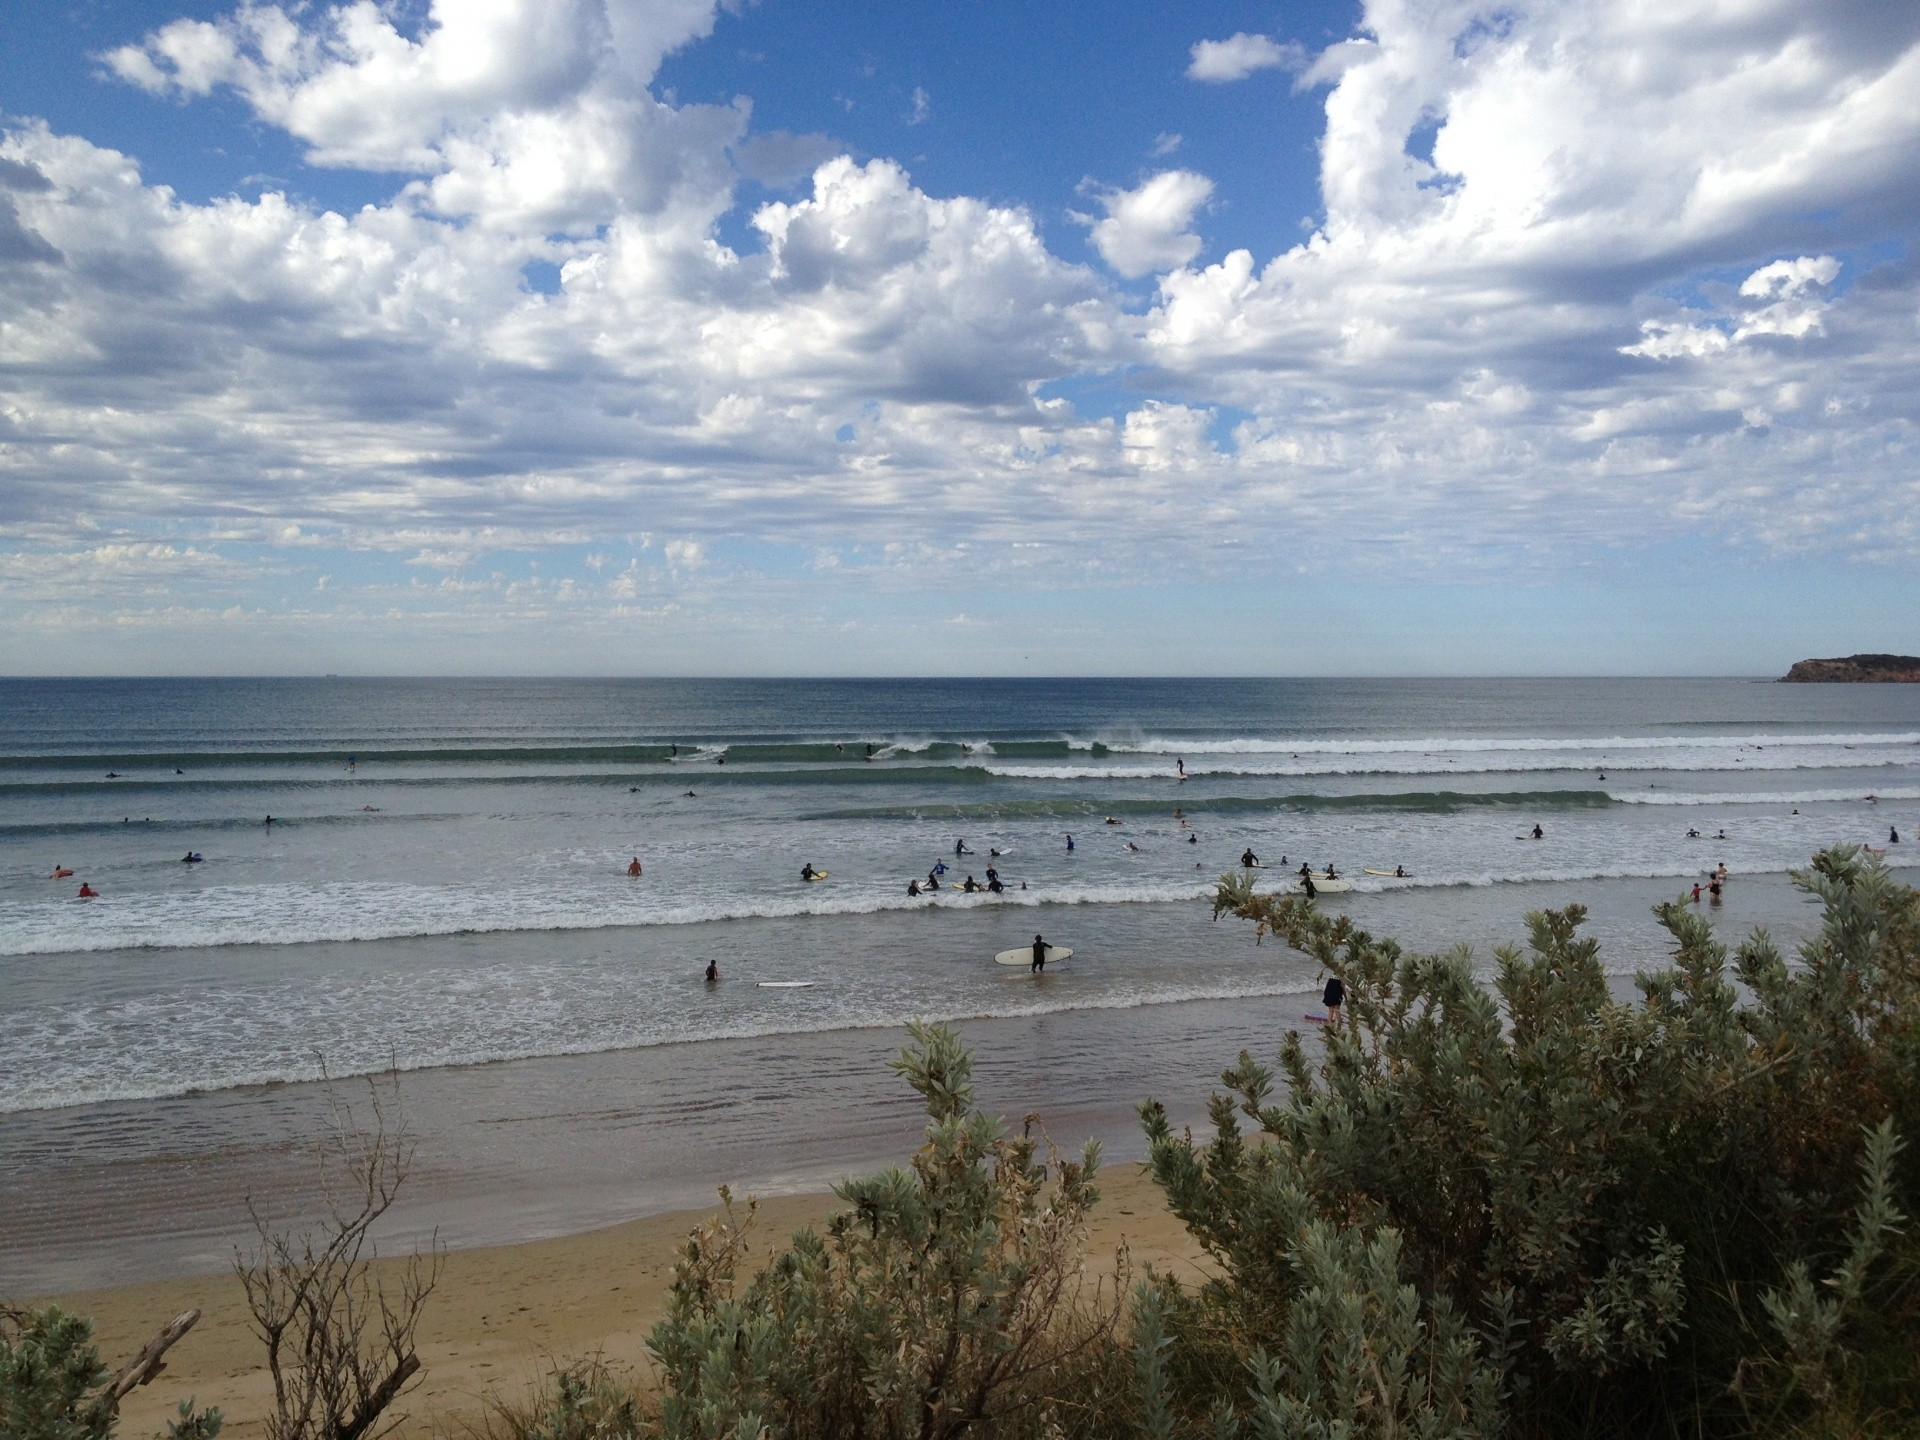 Tania van Megchelen's photo of Ocean Grove